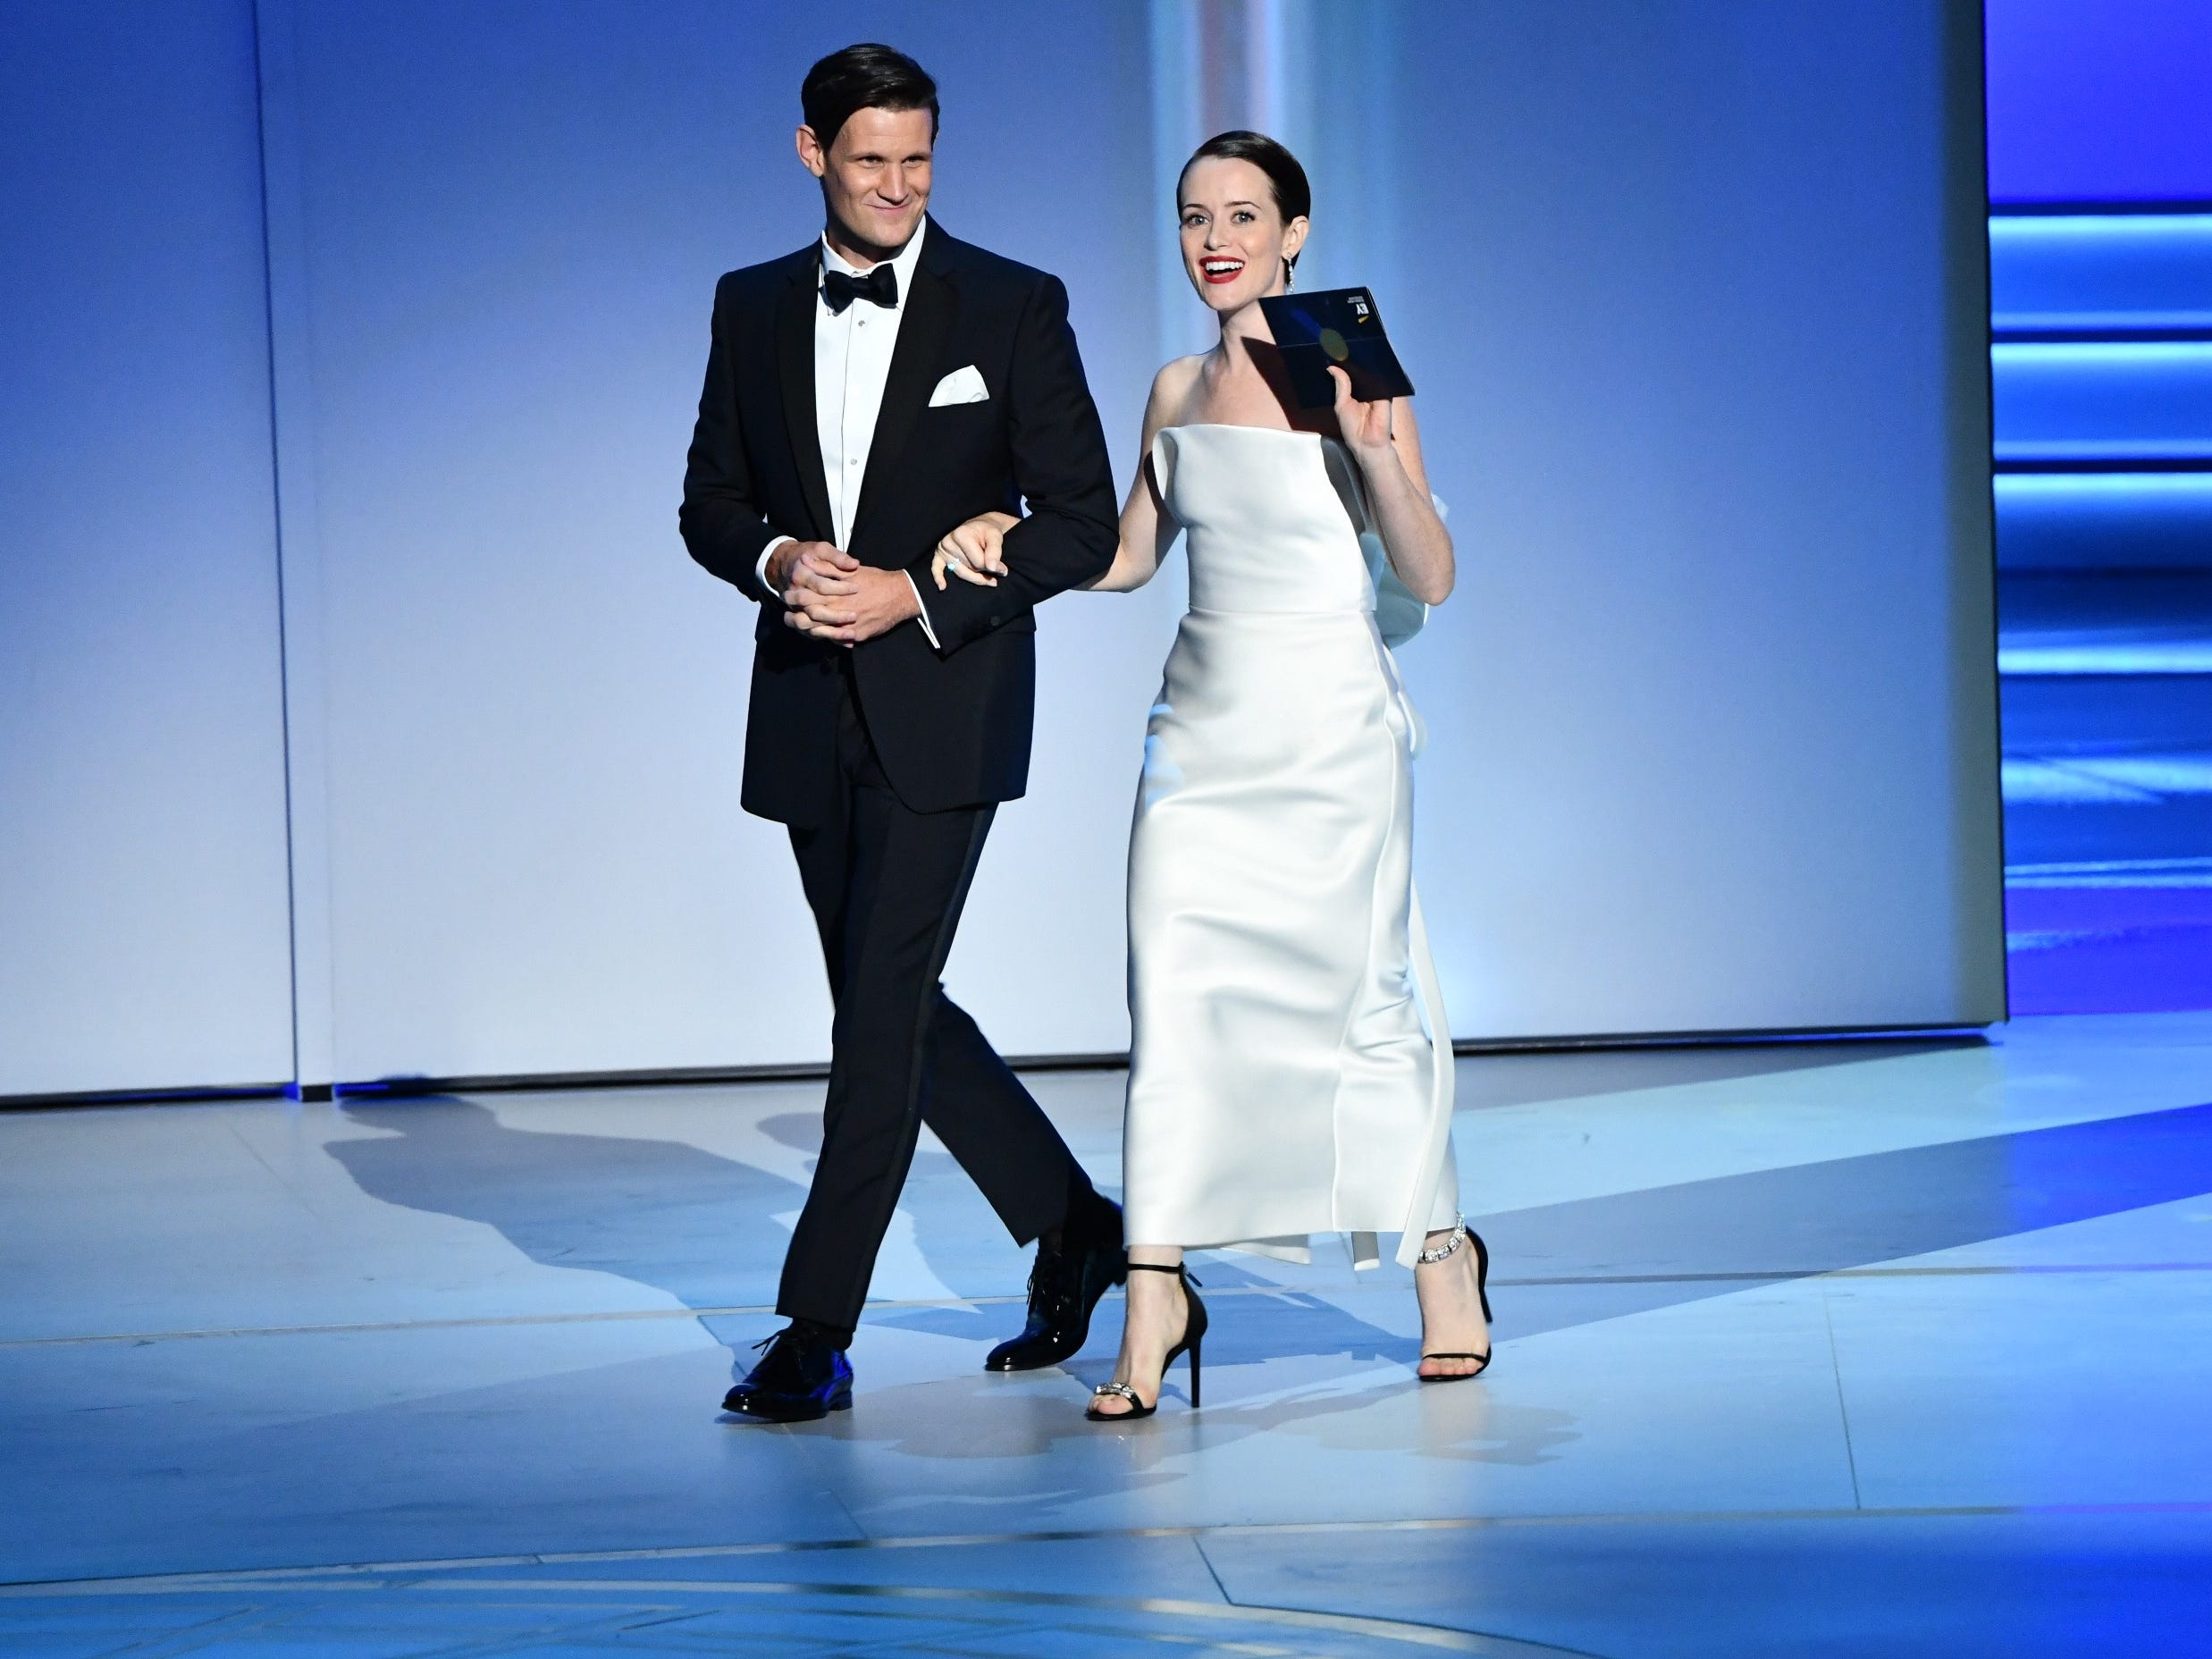 Matt Smith and Claire Foy present the award for supporting actor in a comedy series.